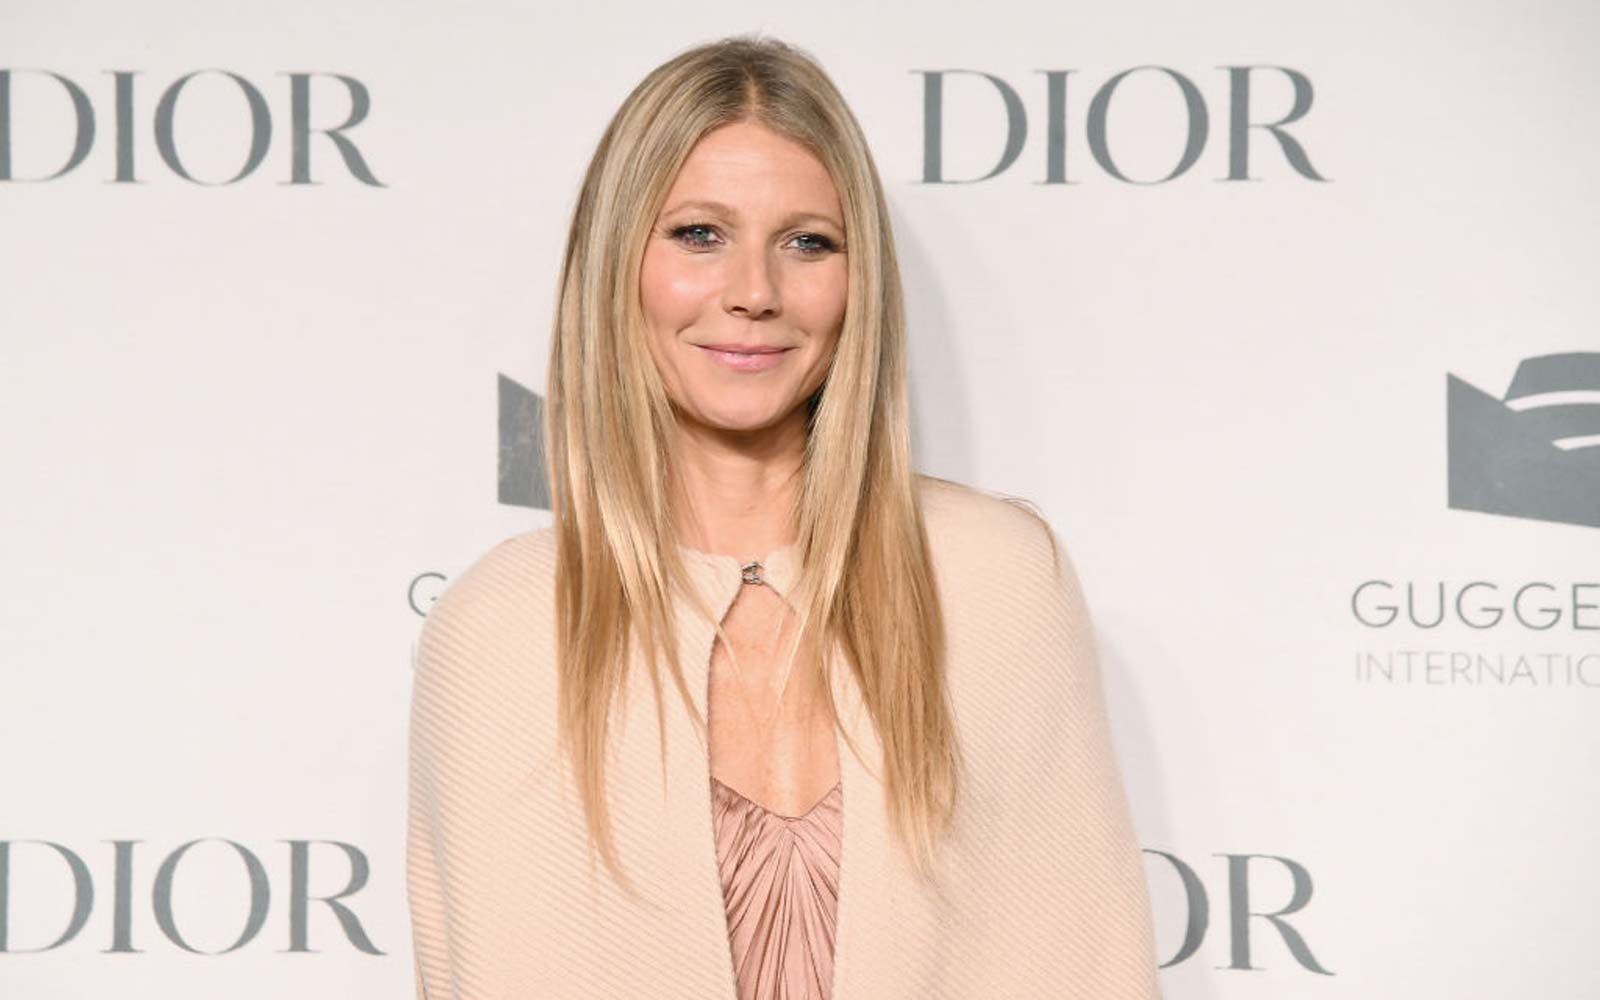 Gwyneth Paltrow Sued for $3.1 Million Over Alleged 'Hit-and-run Ski Crash'